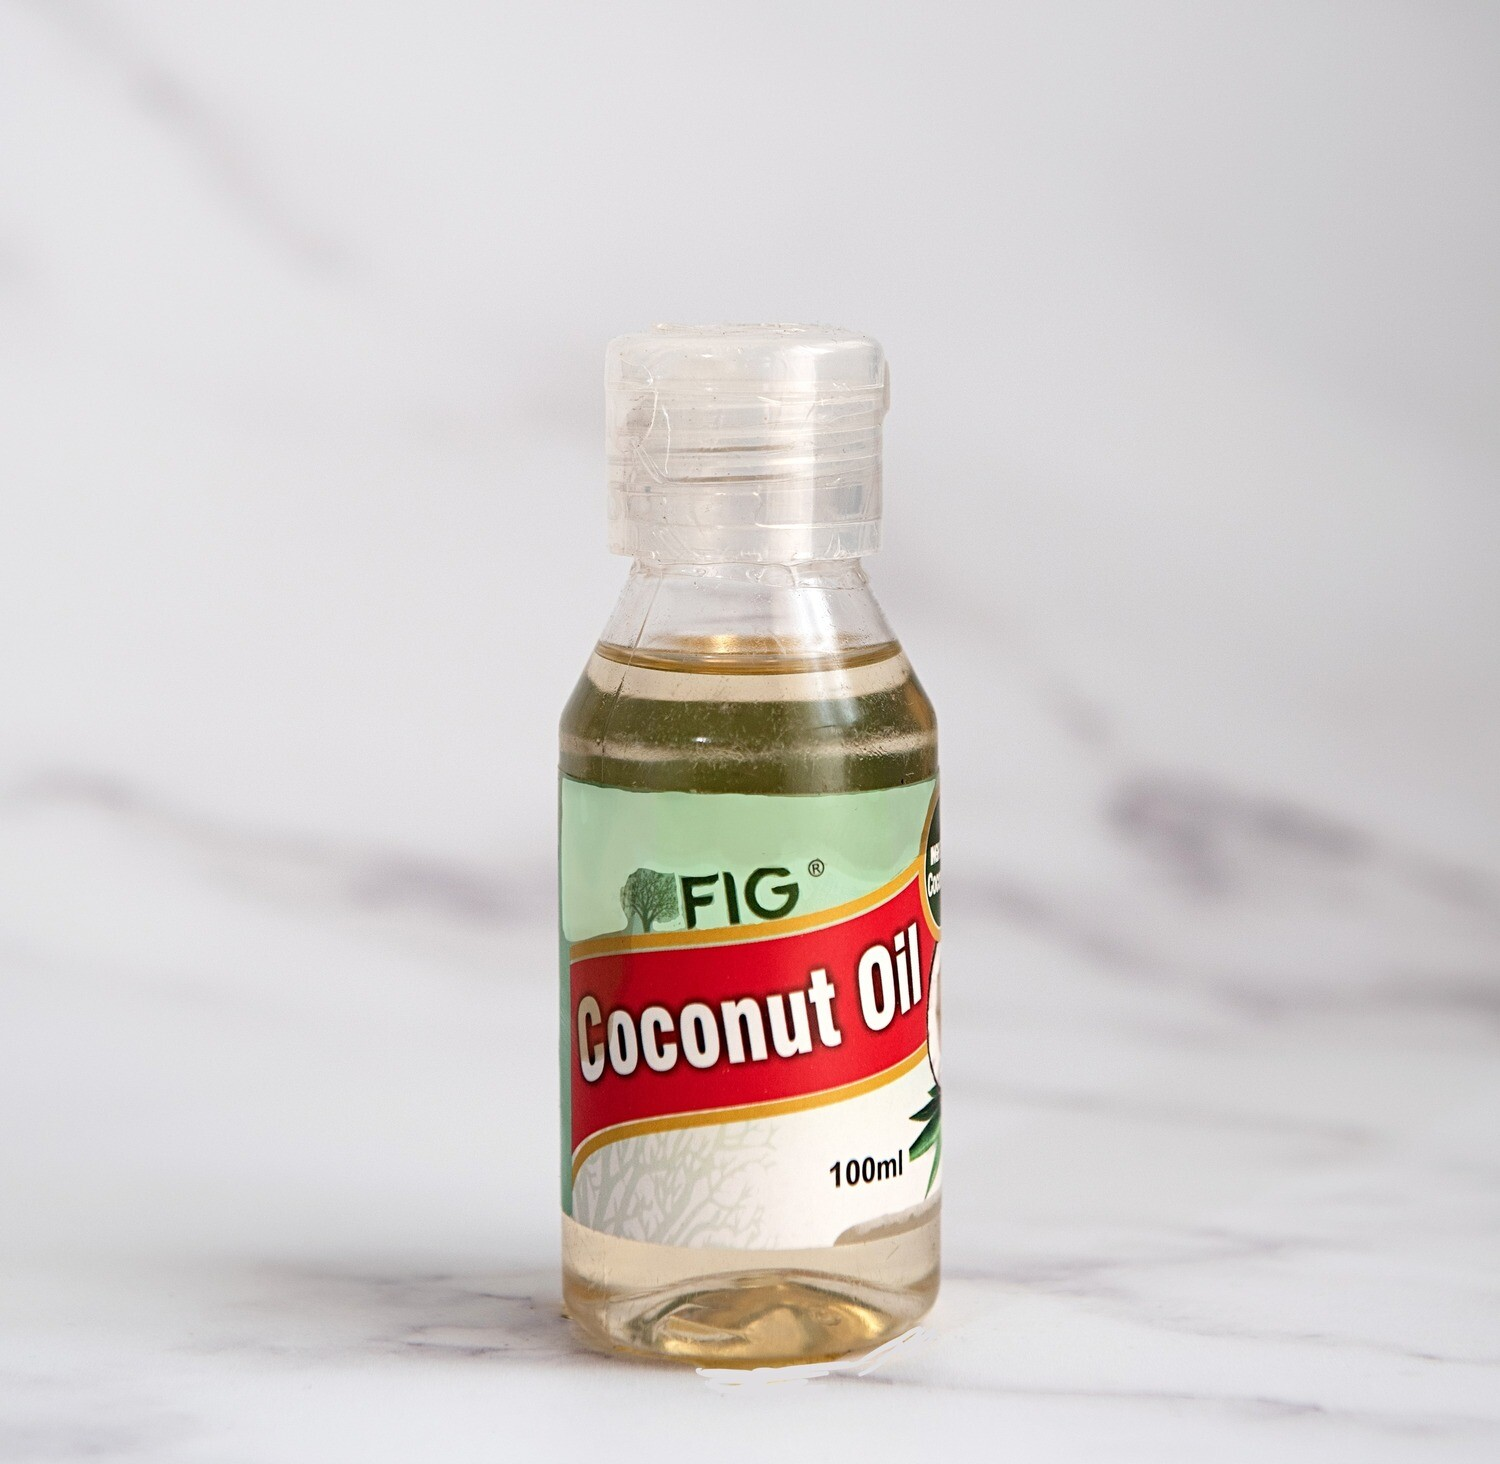 FIG COCONUT OIL (100ML)